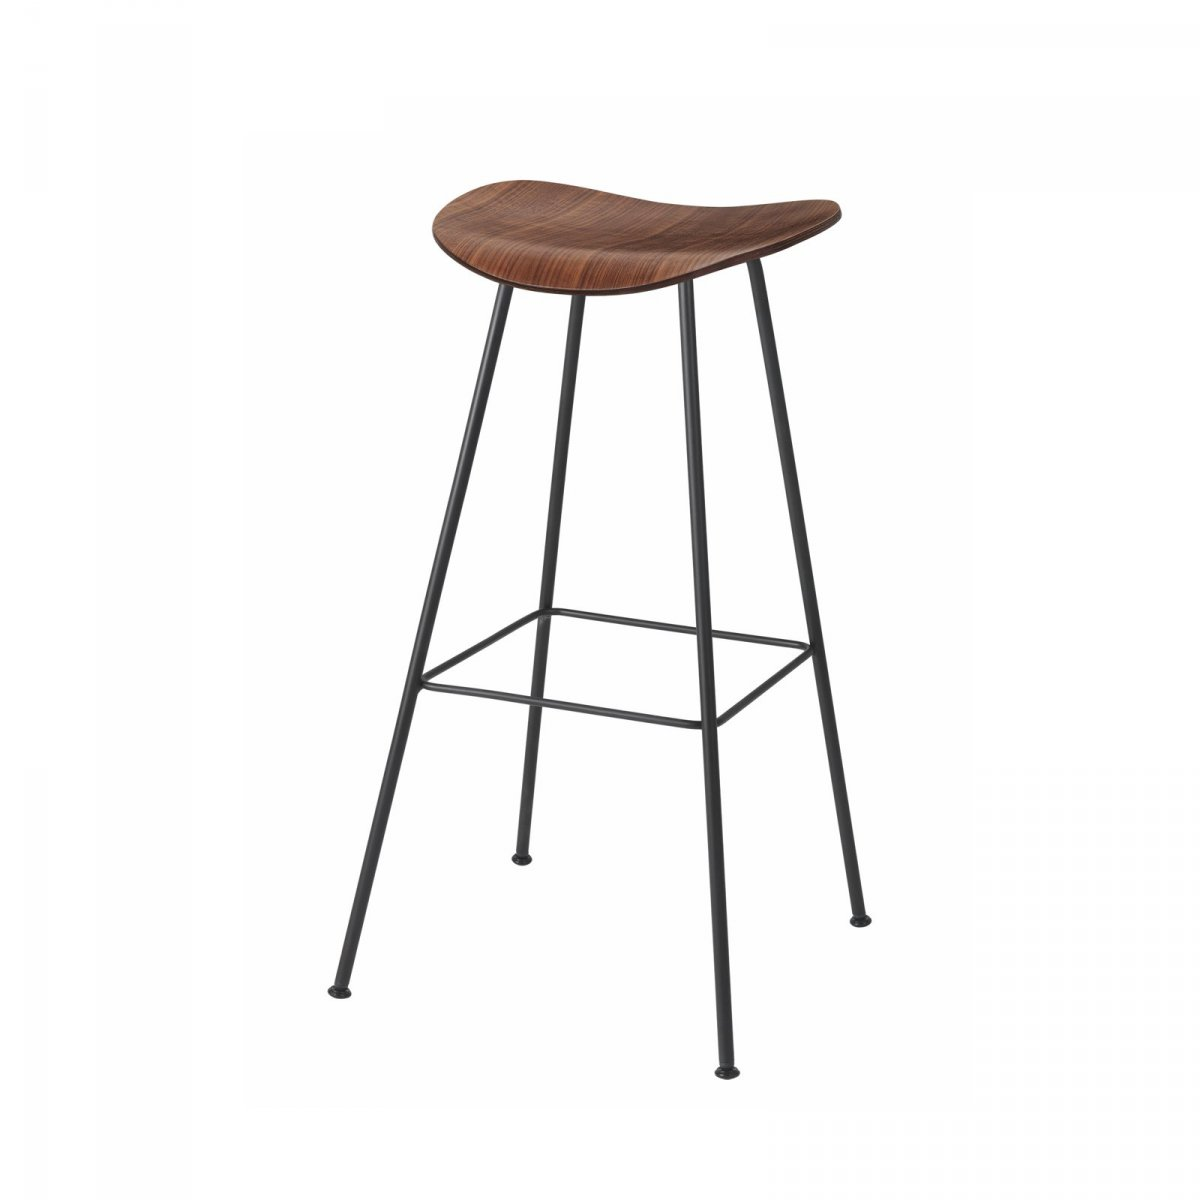 Gubi 2D Stool Center Base, walnut.